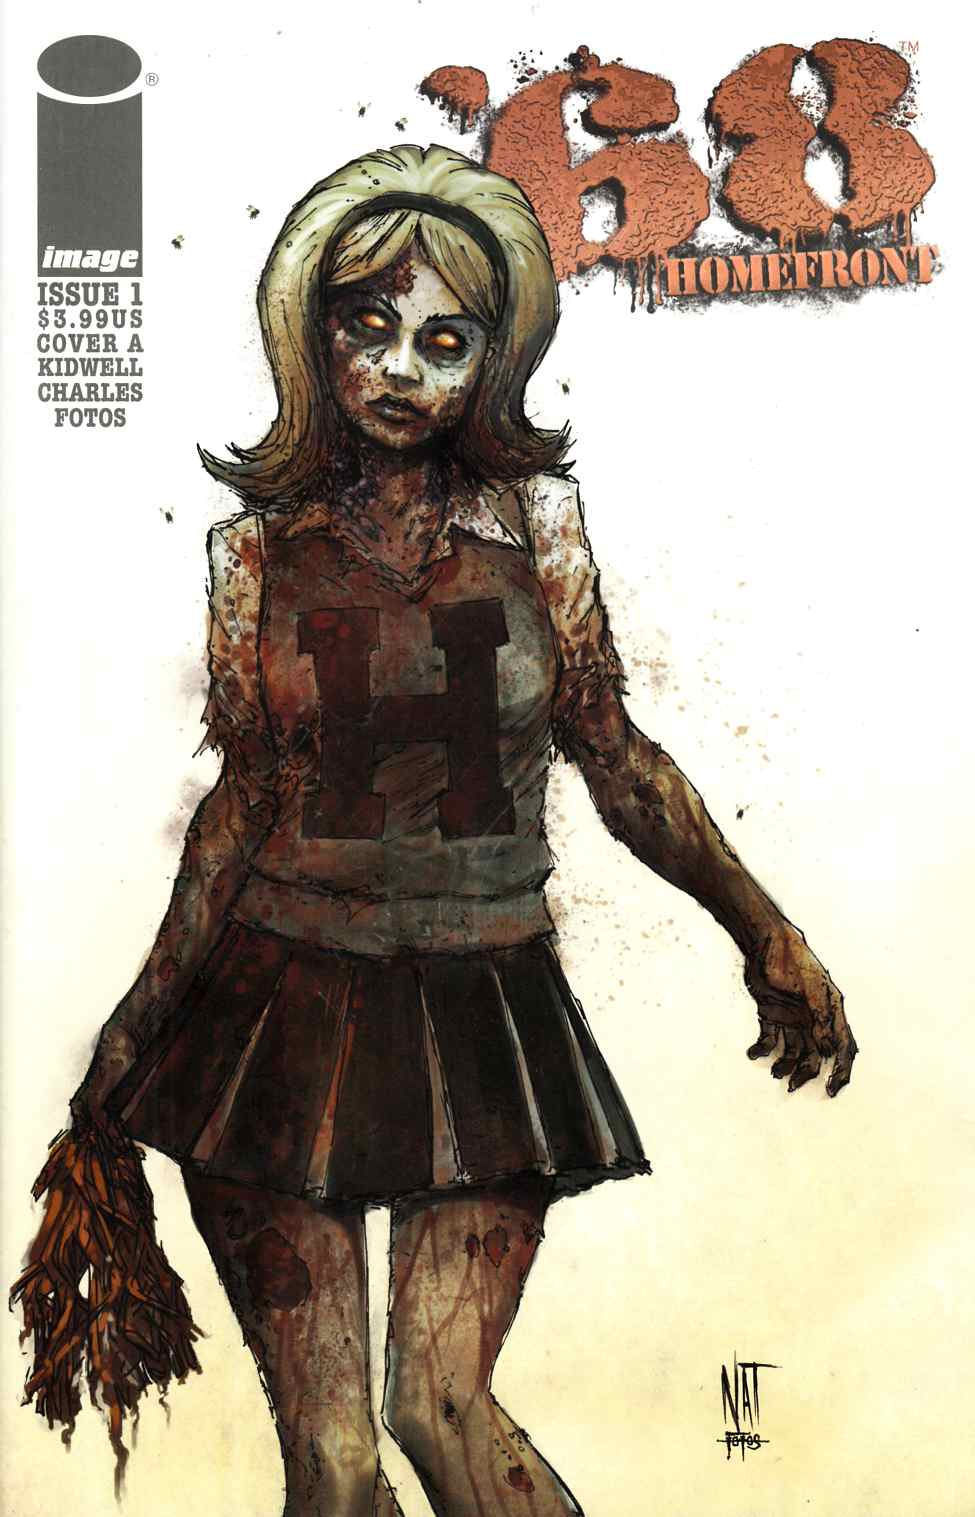 68 Homefront #1 Cover A- Jone & Fotos [Comic] THUMBNAIL